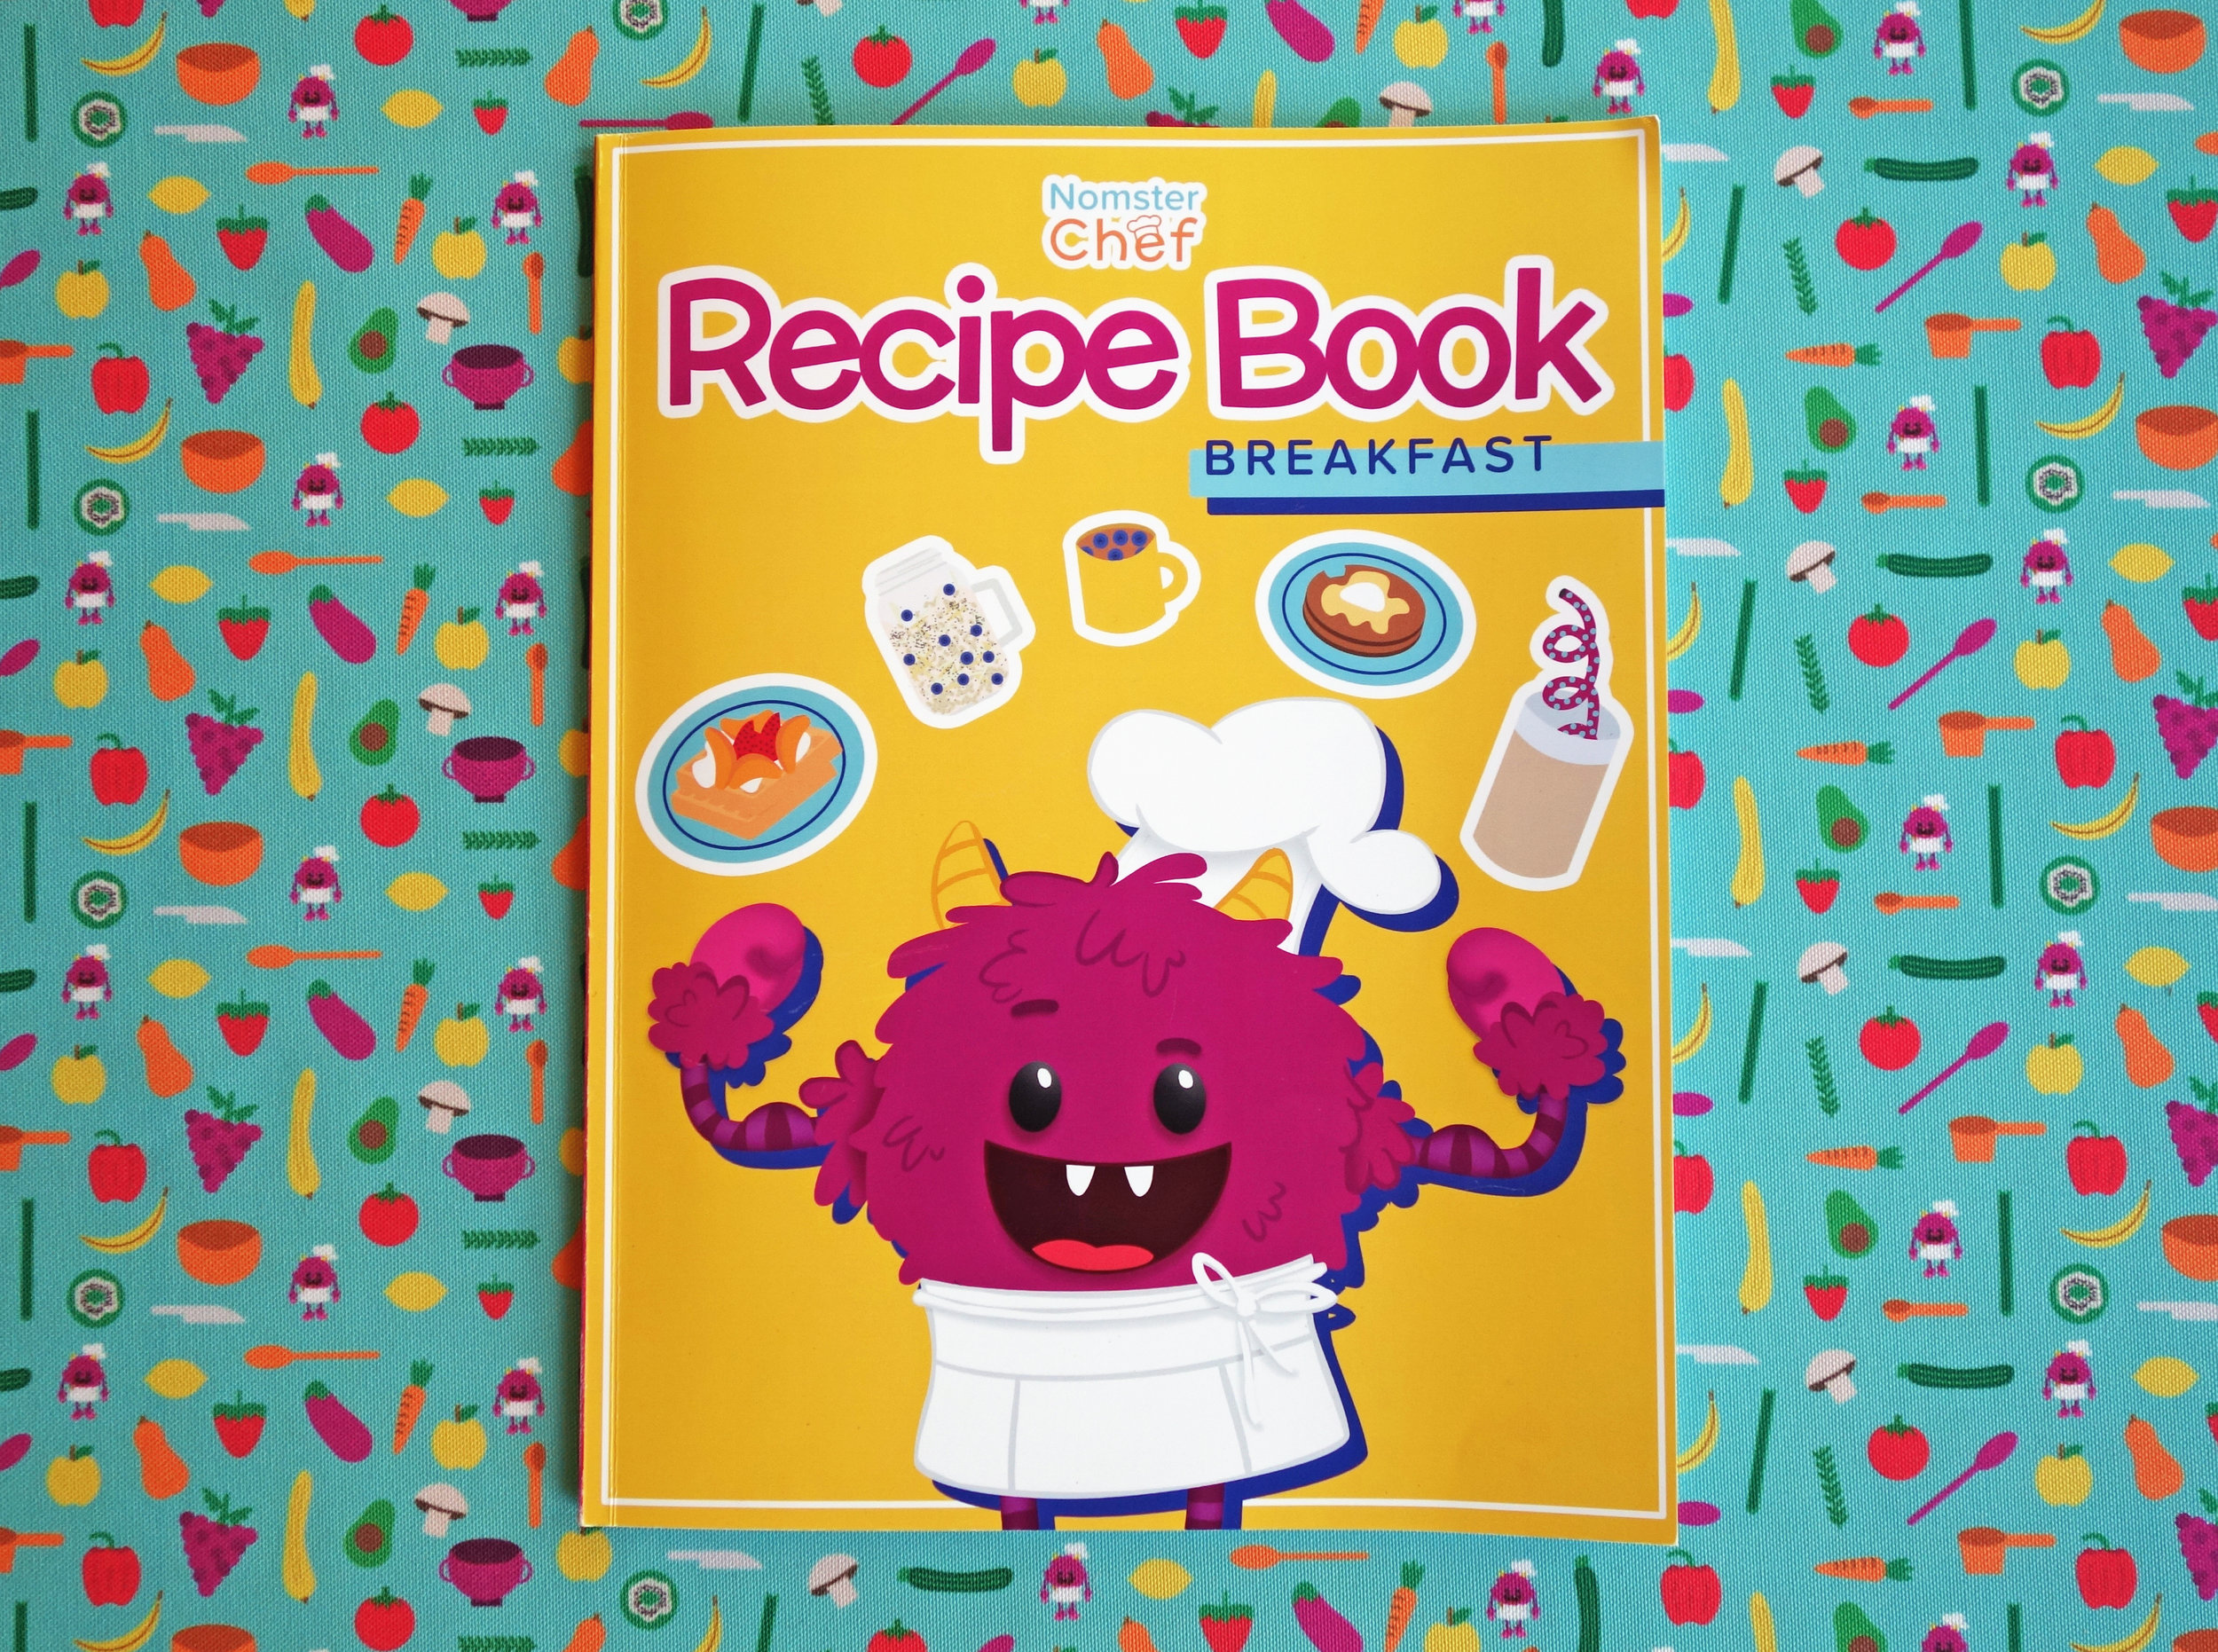 Nomster Chef Breakfast Recipe Book- Cookbook for Kids